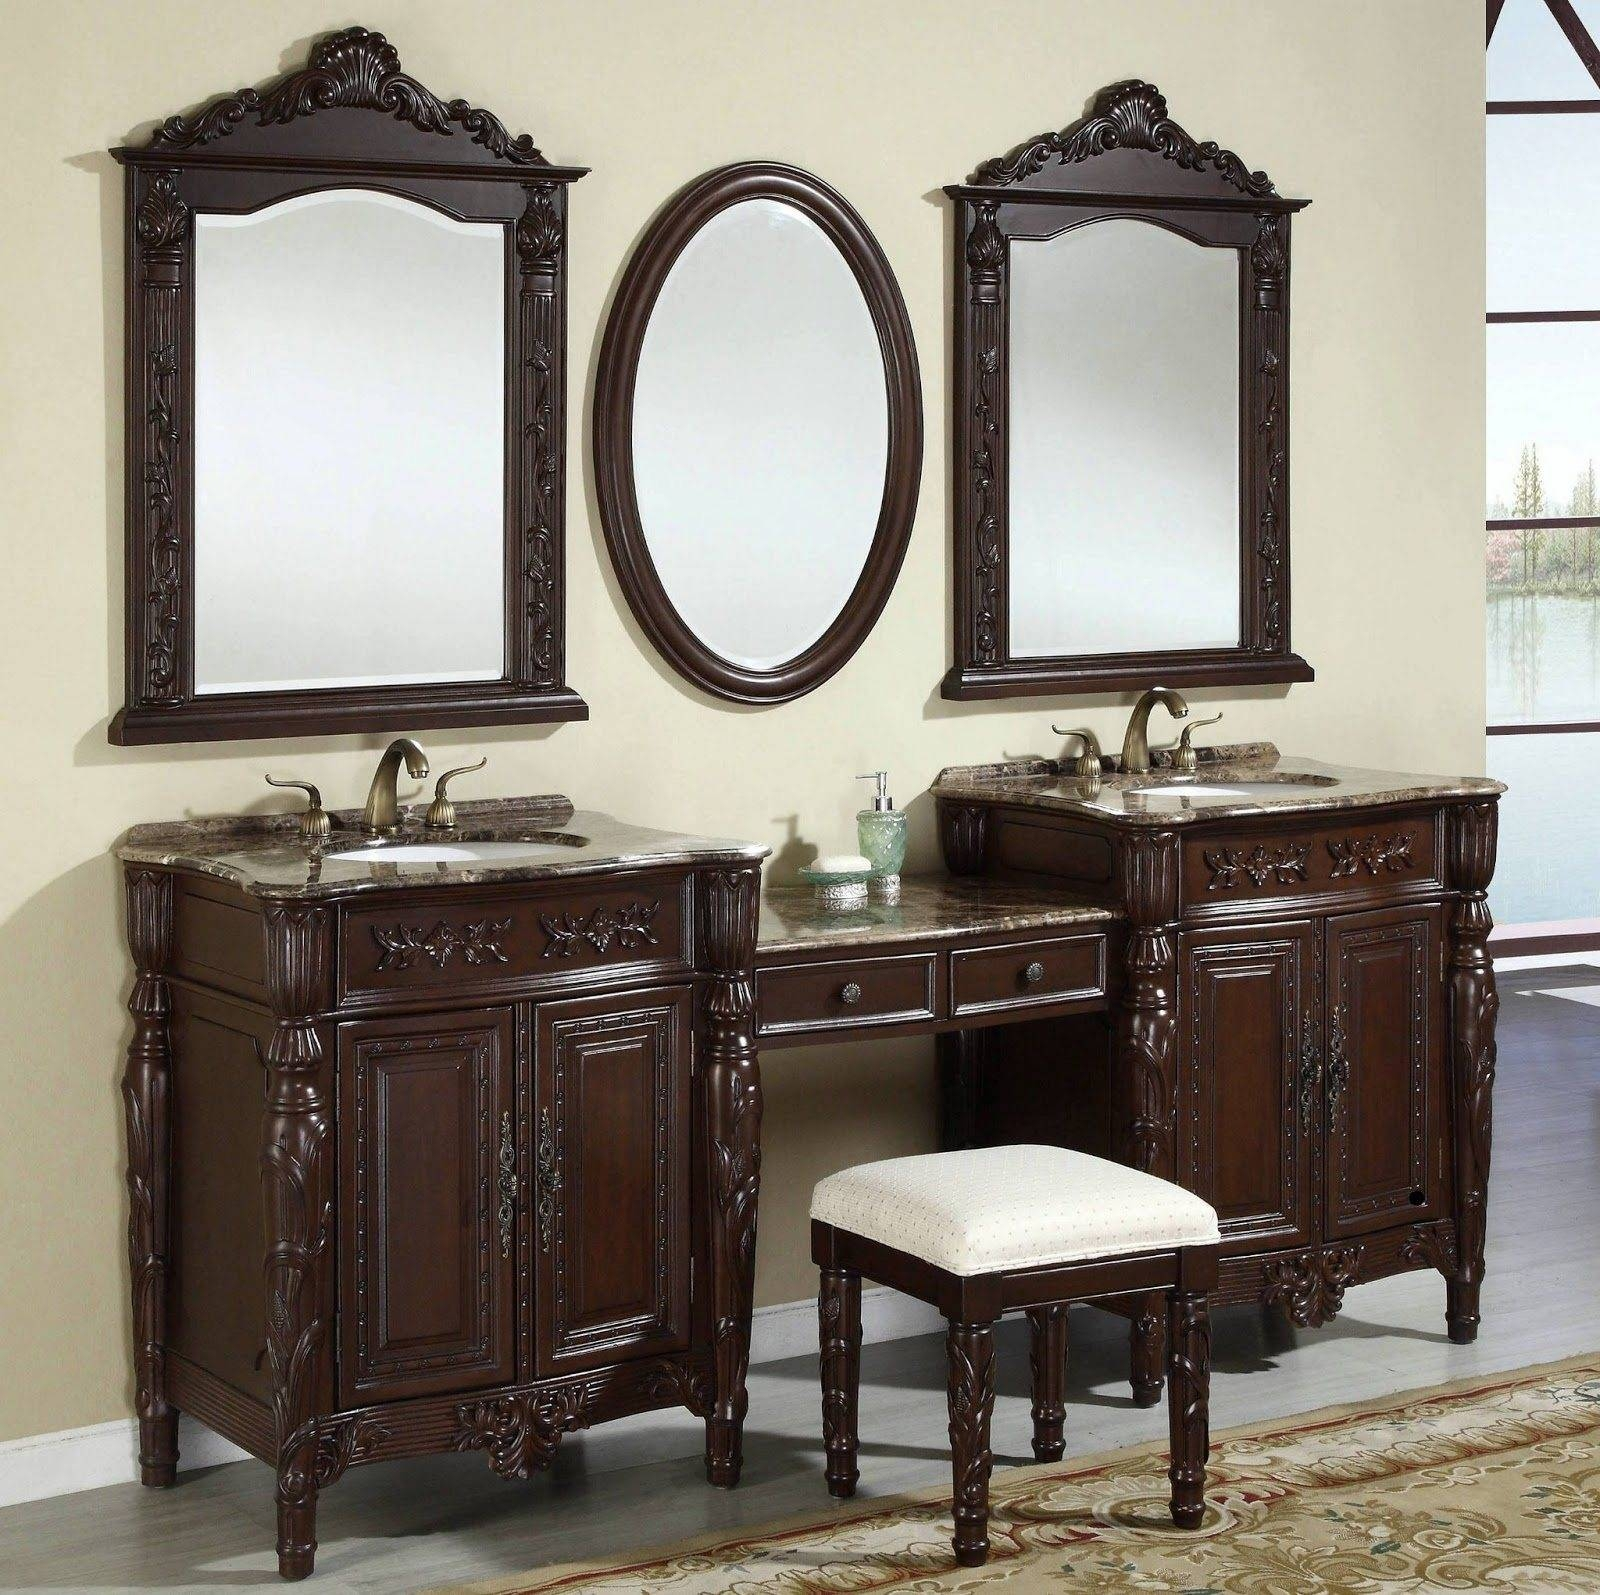 Decorative Bathroom Mirrors. Uttermost Kenitra Gold Arch within Triple Oval Wall Mirrors (Image 6 of 25)